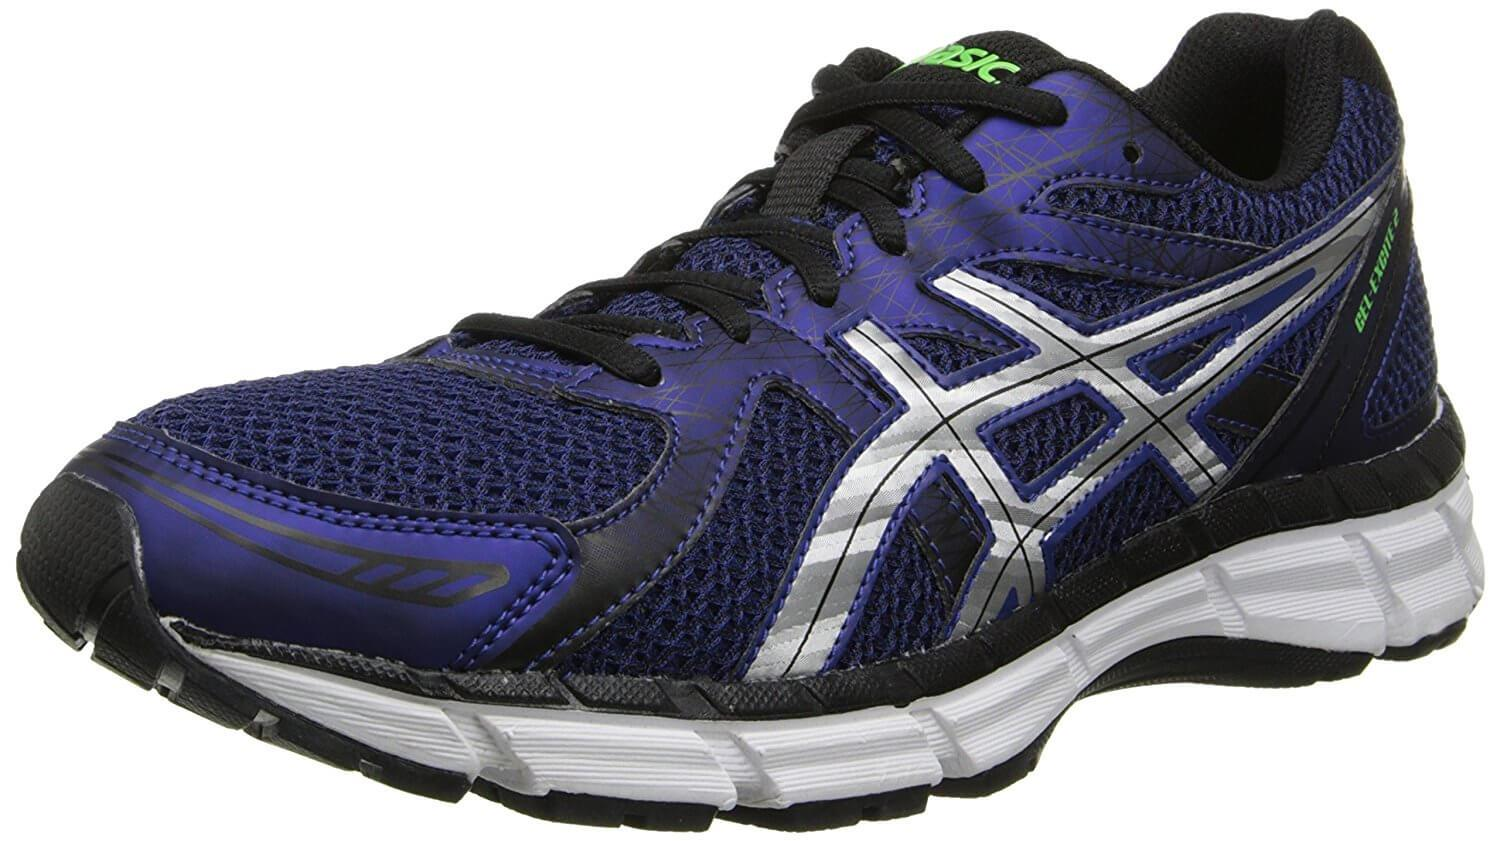 A three quarter view of the Asics Gel Excite 2 ...